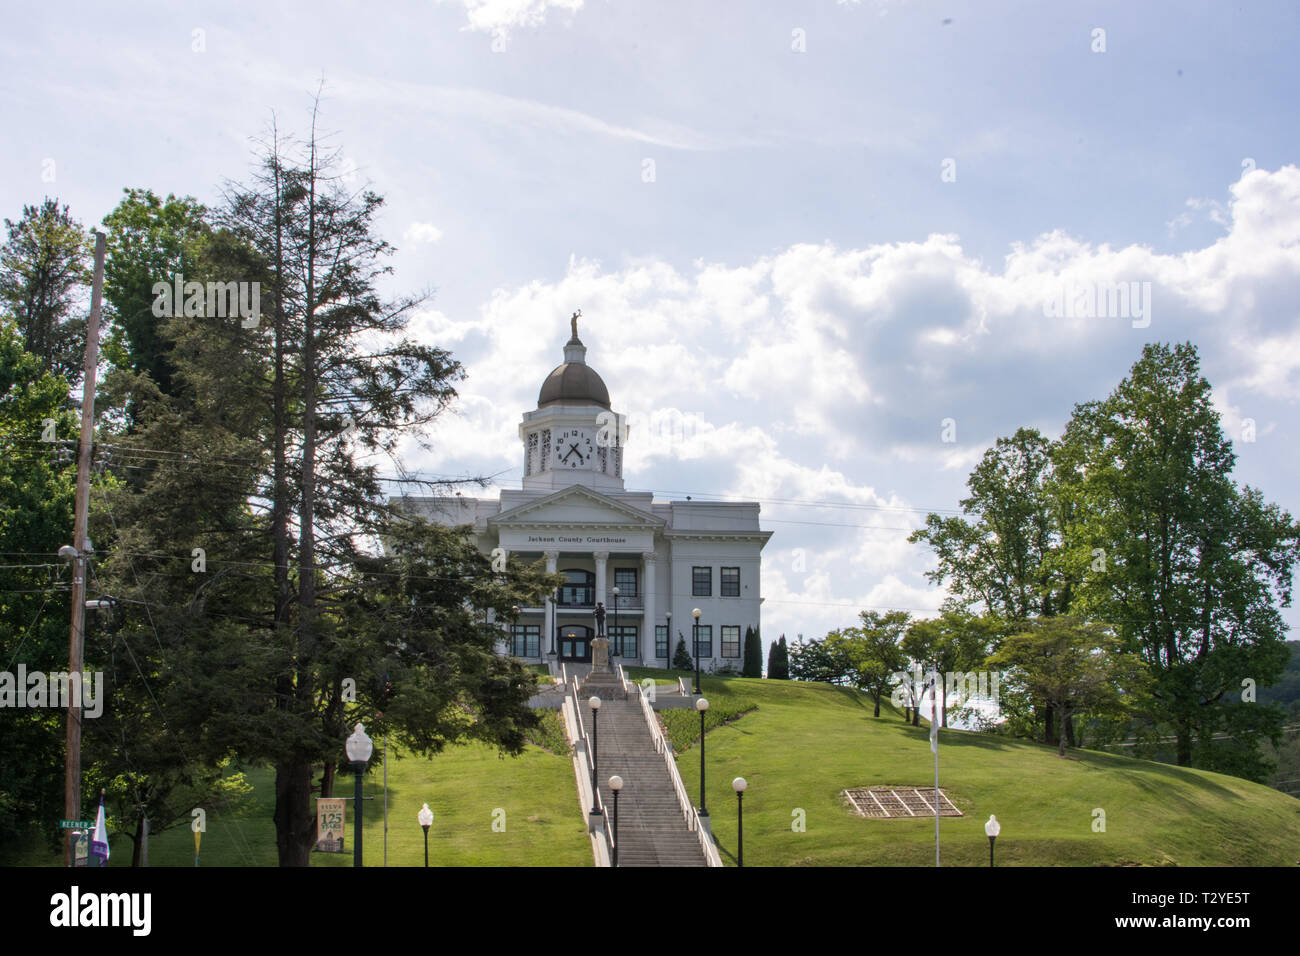 The Jackson County Courthouse is an iconic, historic building which has been renovated and now houses many community organizations. - Stock Image